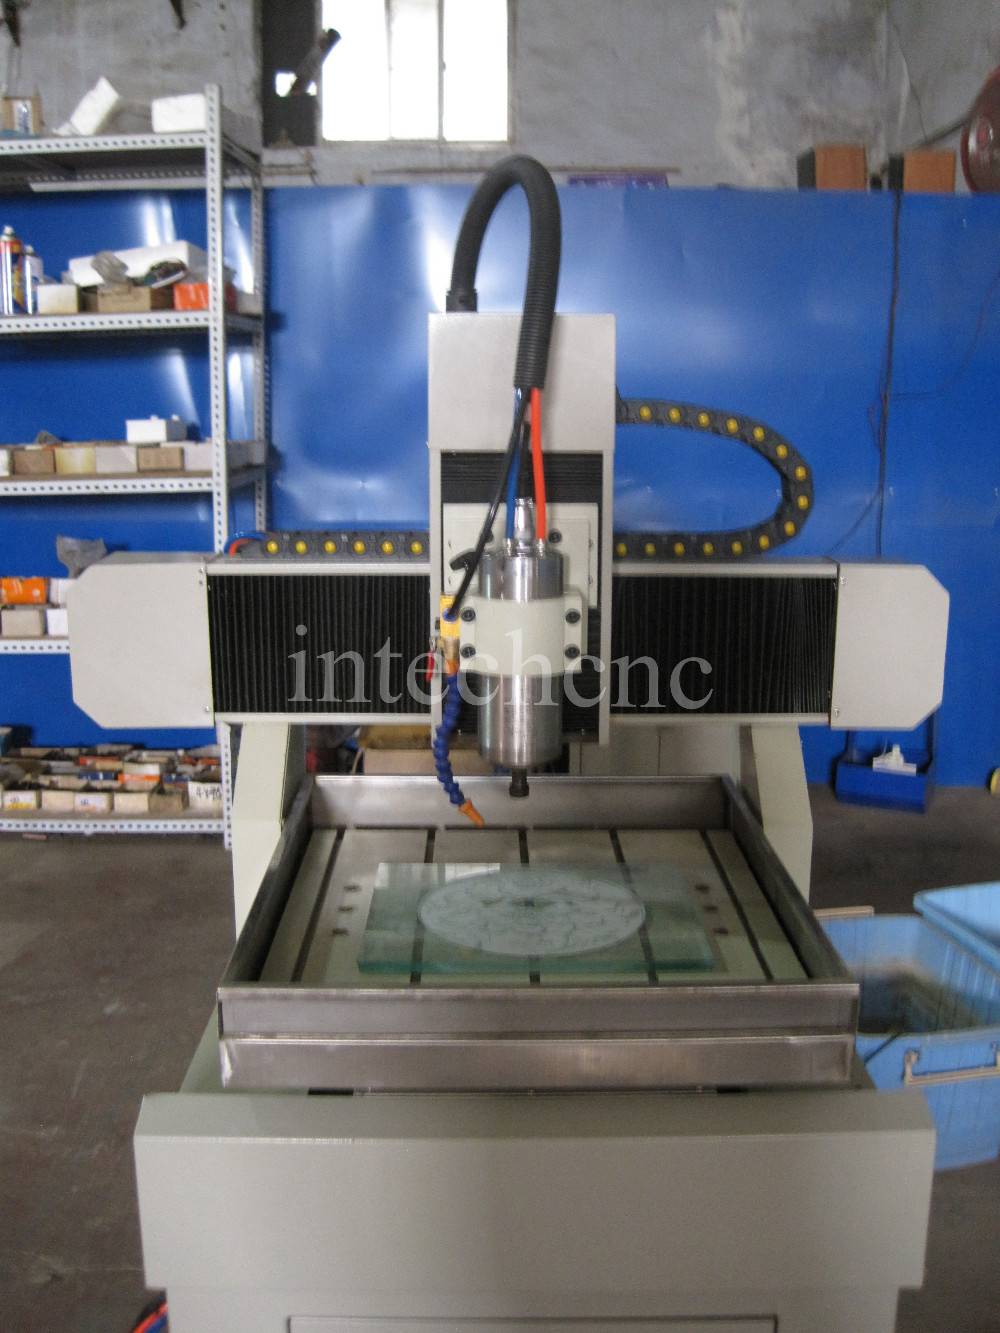 fast speed LFG4040 used cnc router for sale craigslist-in